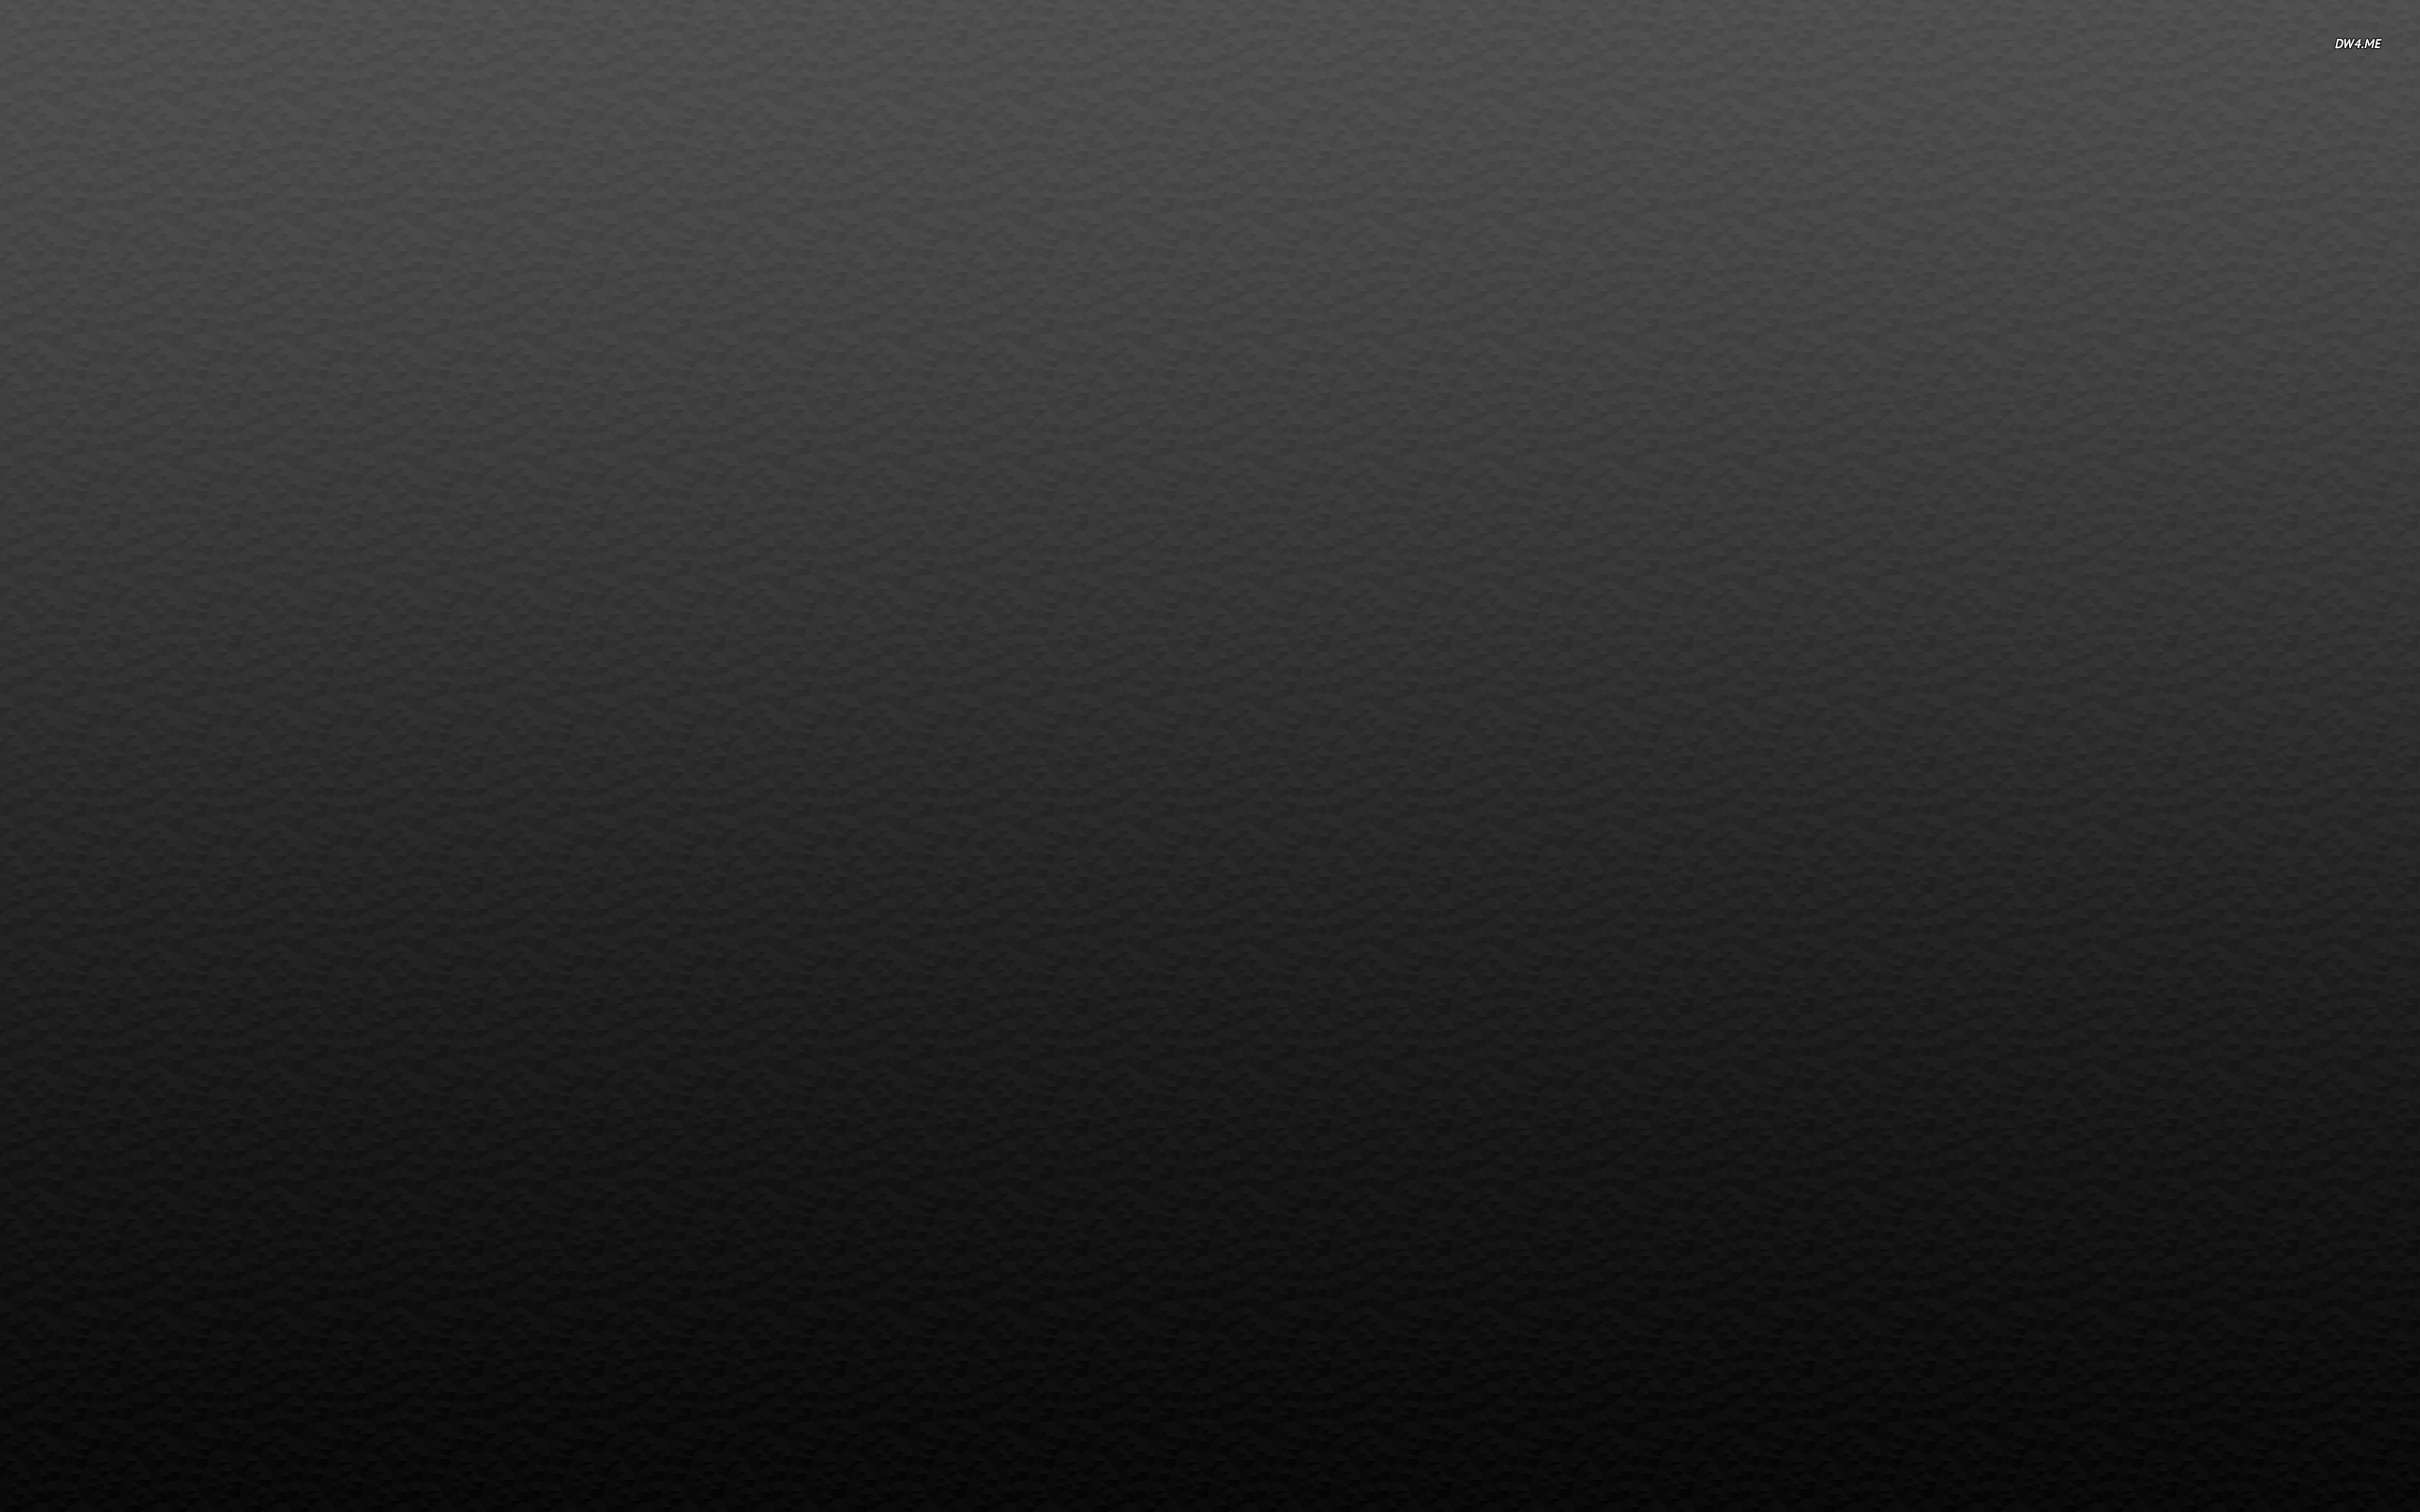 2560x1600 Black leather wallpaper - Minimalistic wallpapers - #168